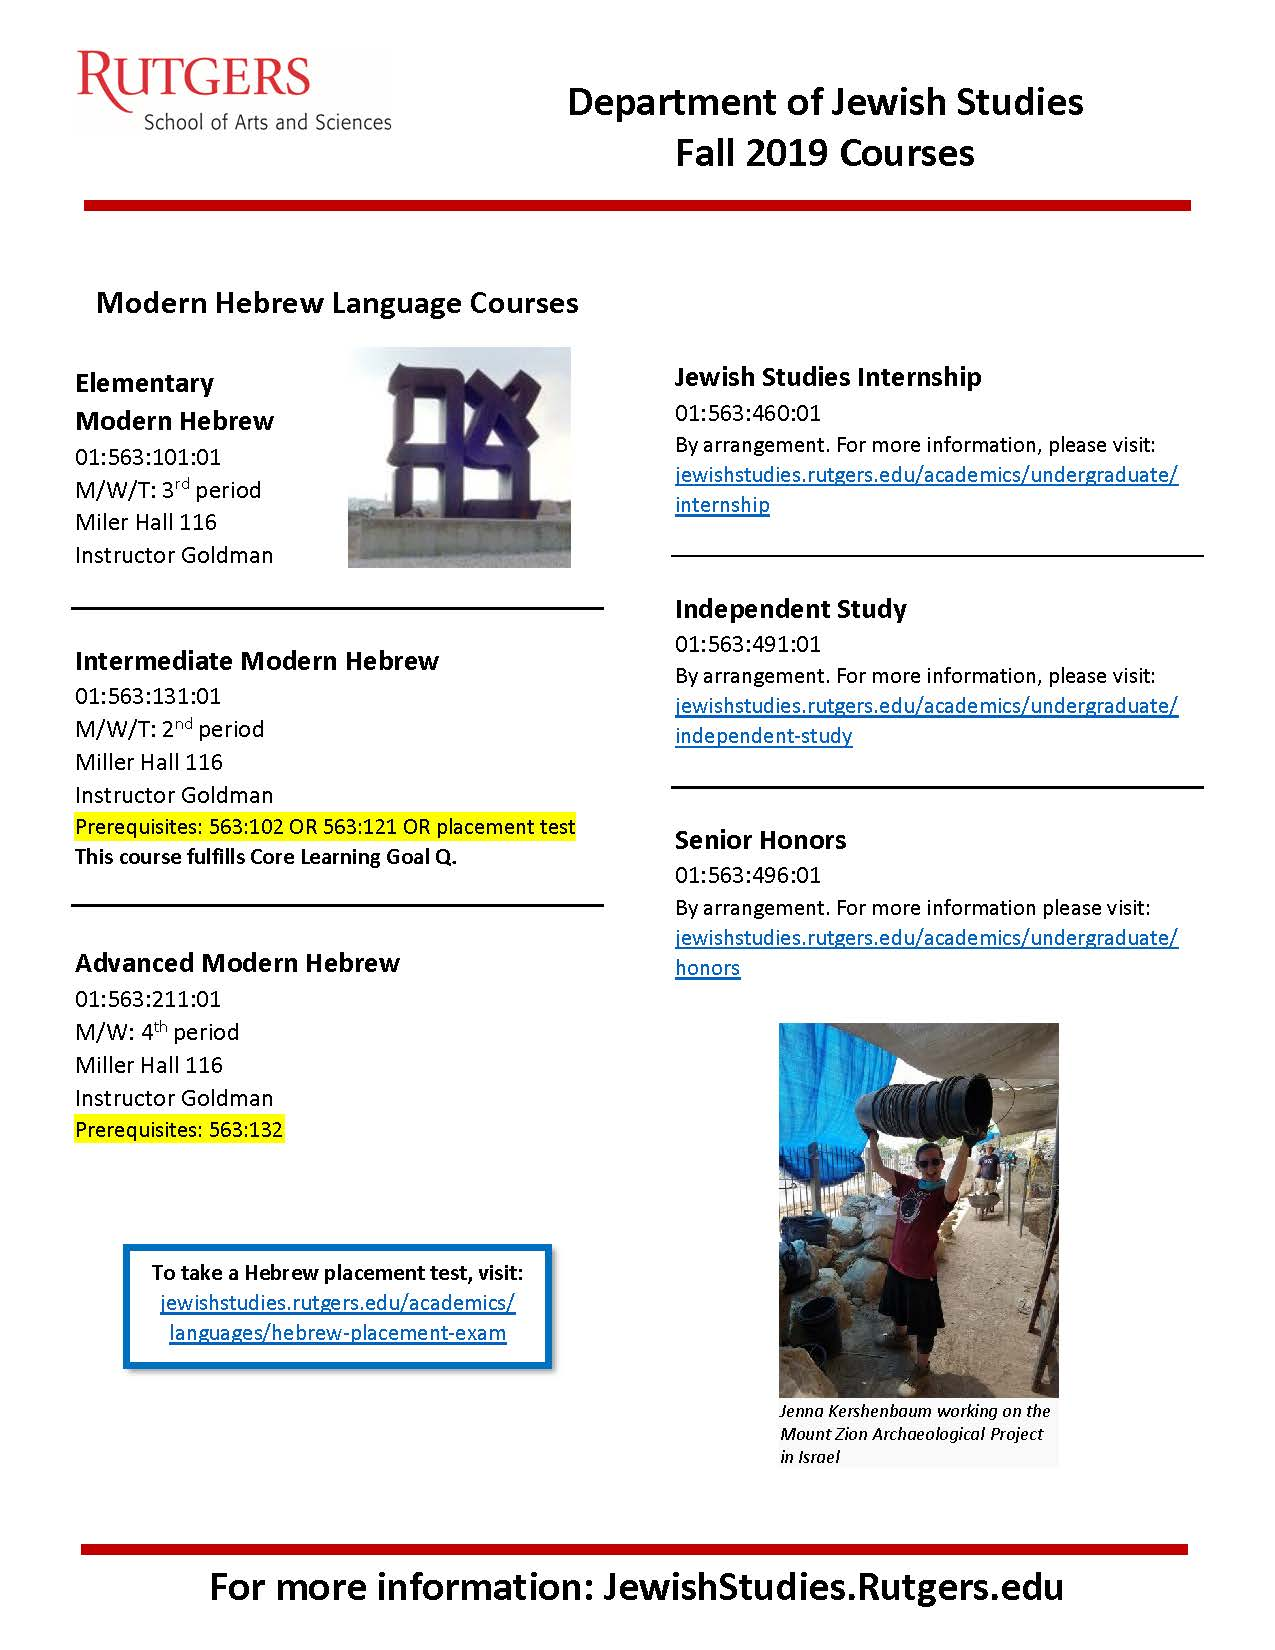 Fall 2019 Course Advertisement Page 2